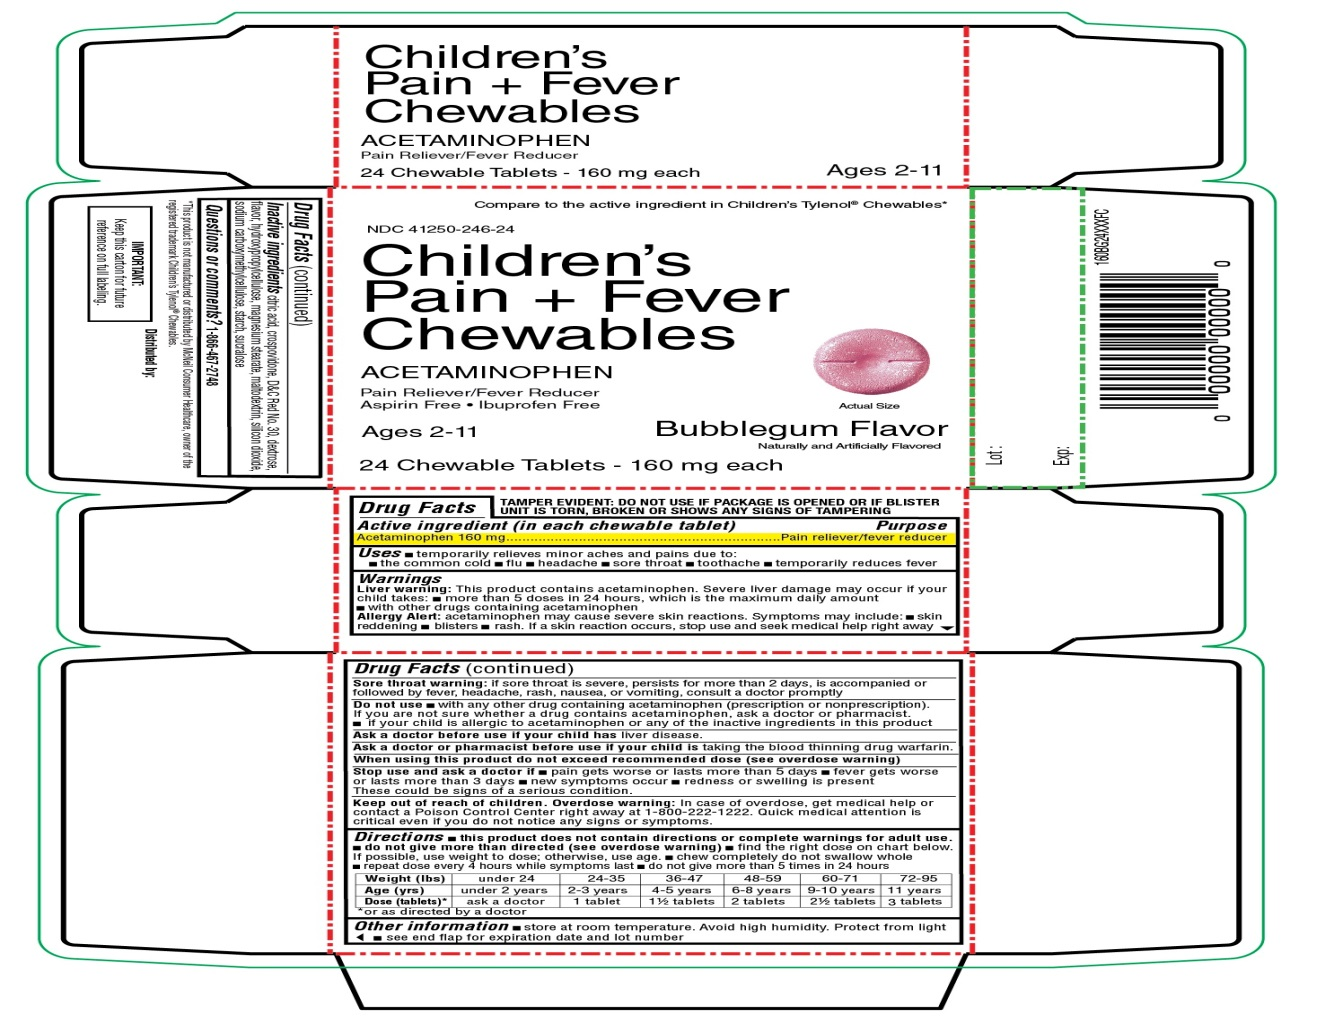 Children's Pain and Fever Chewables Acetaminophen